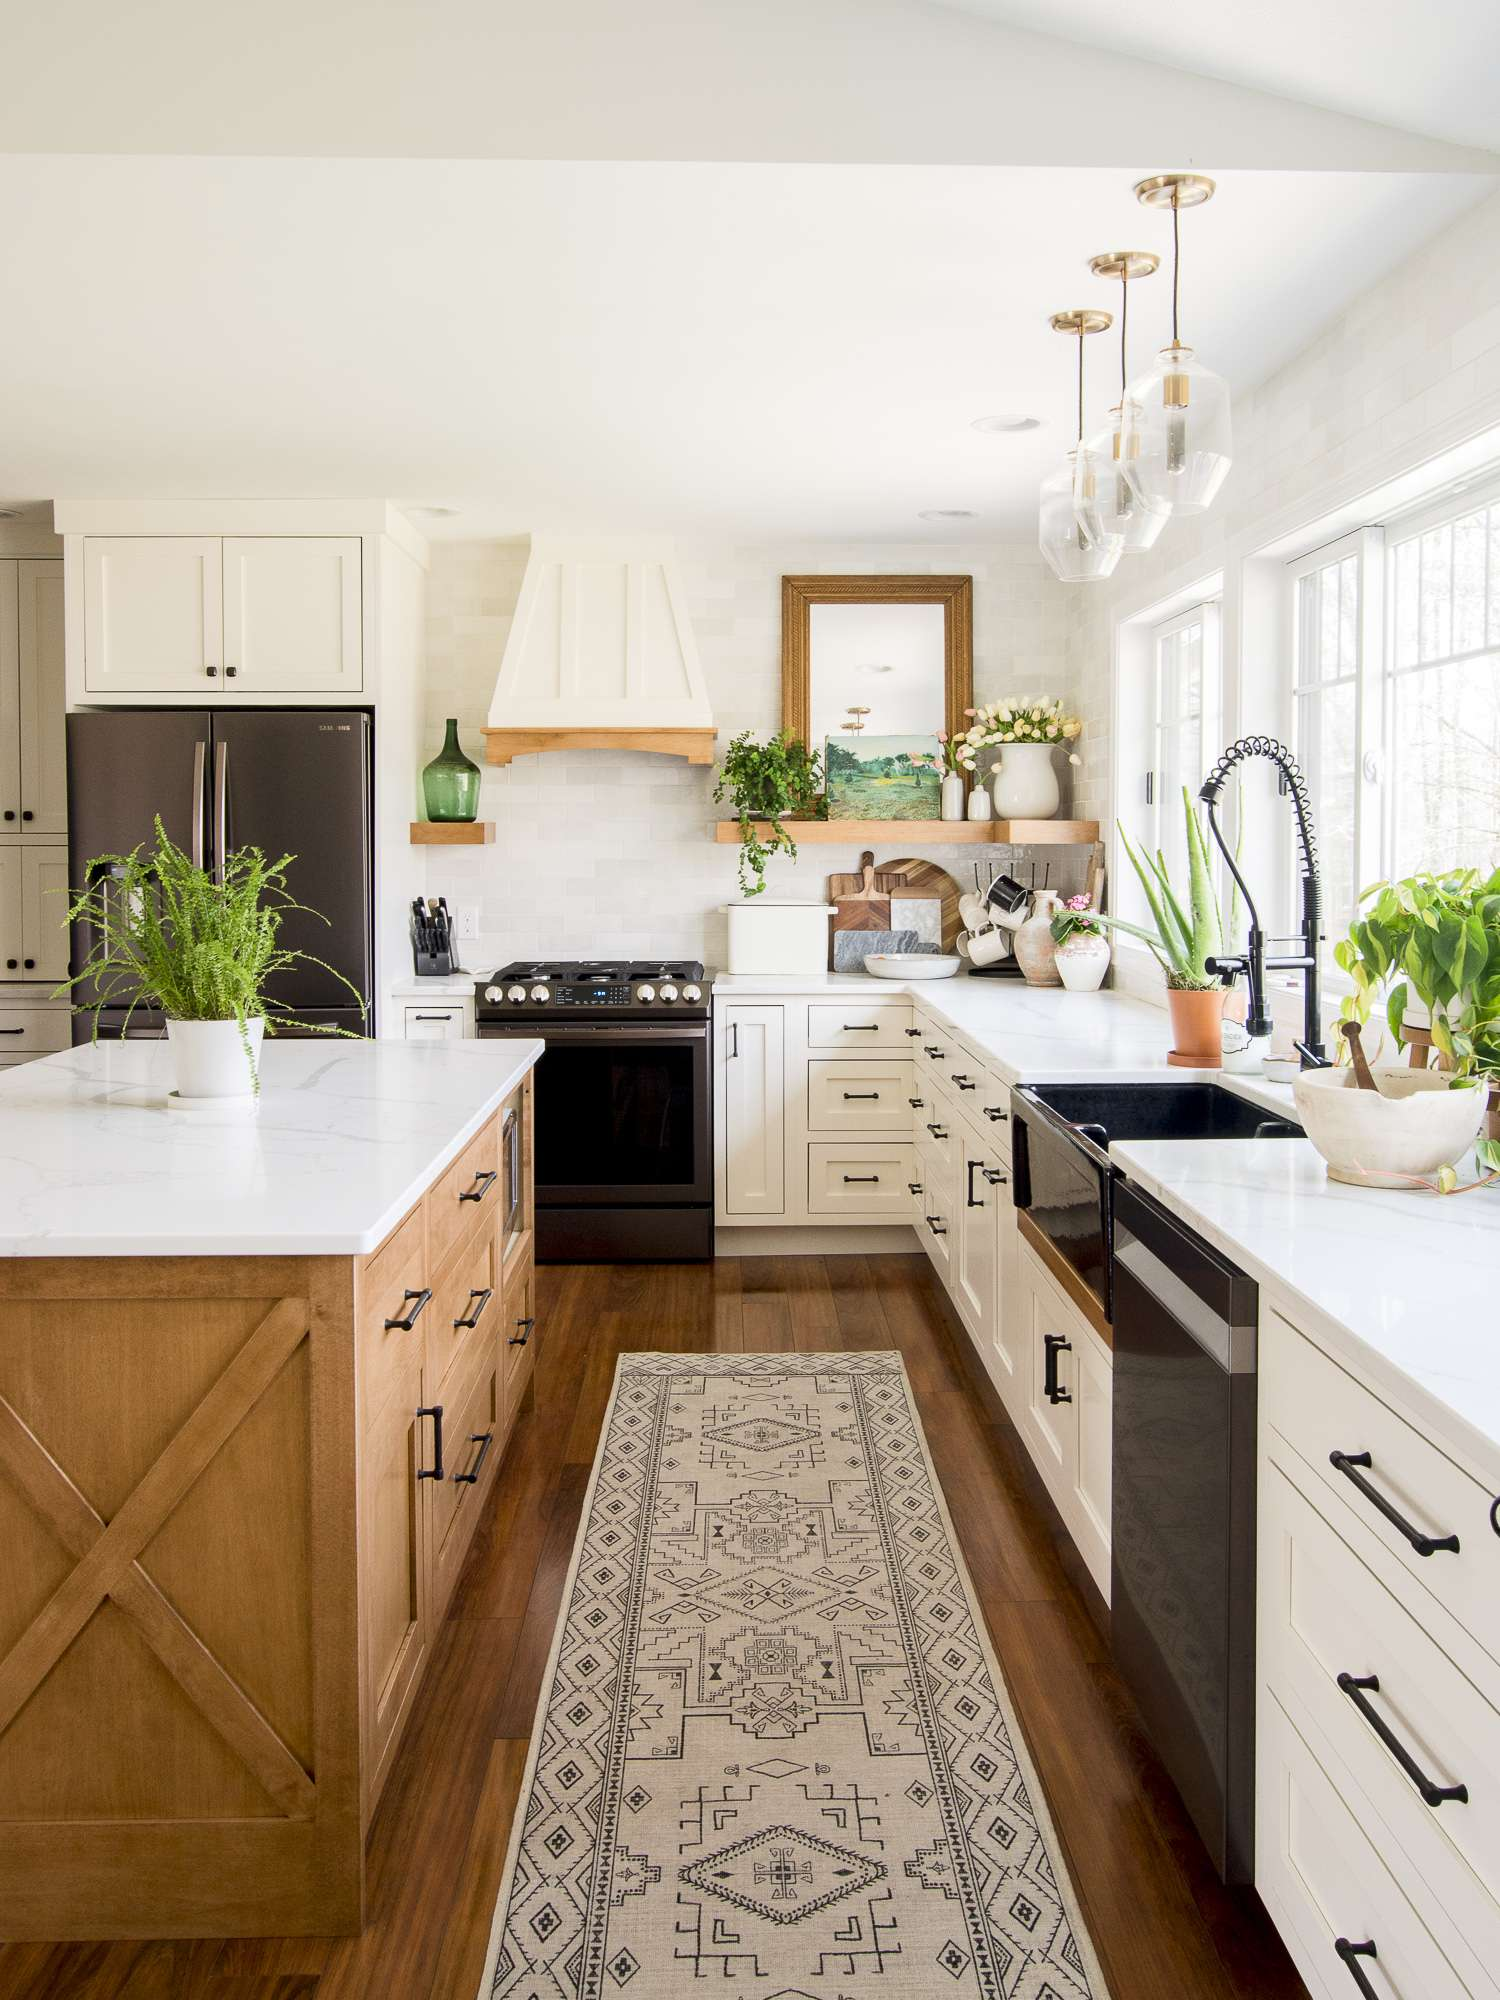 Indoor plant care in a modern farmhouse kitchen.